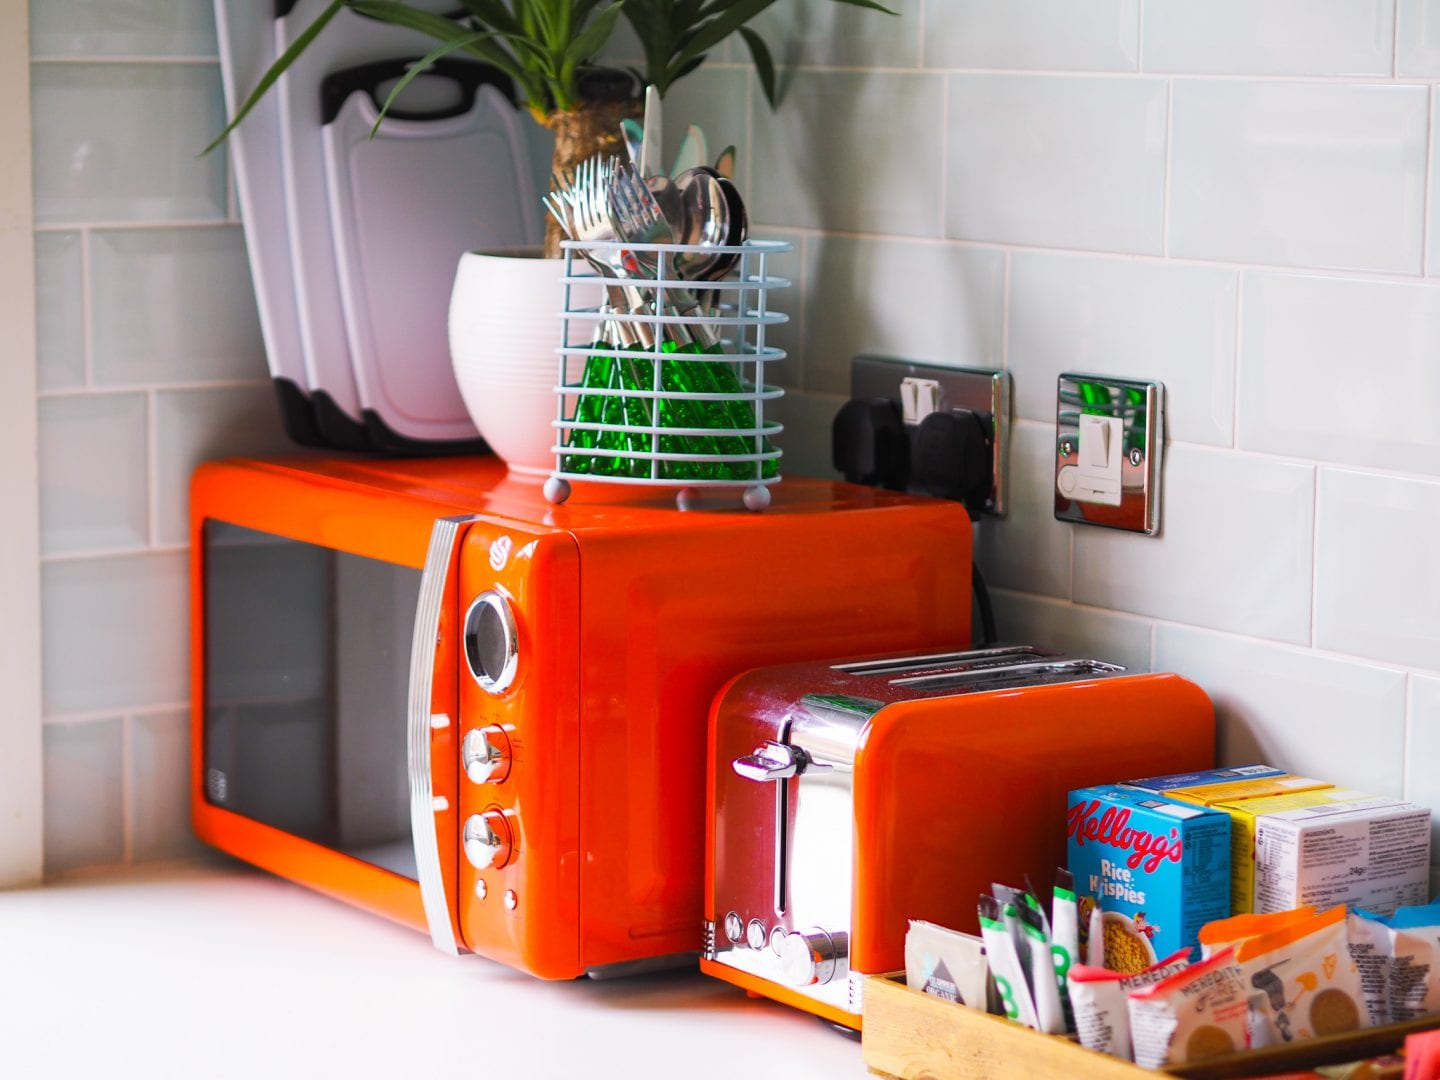 Margate-suites-hotel-airbnb-holiday-cottage-orange-microwave